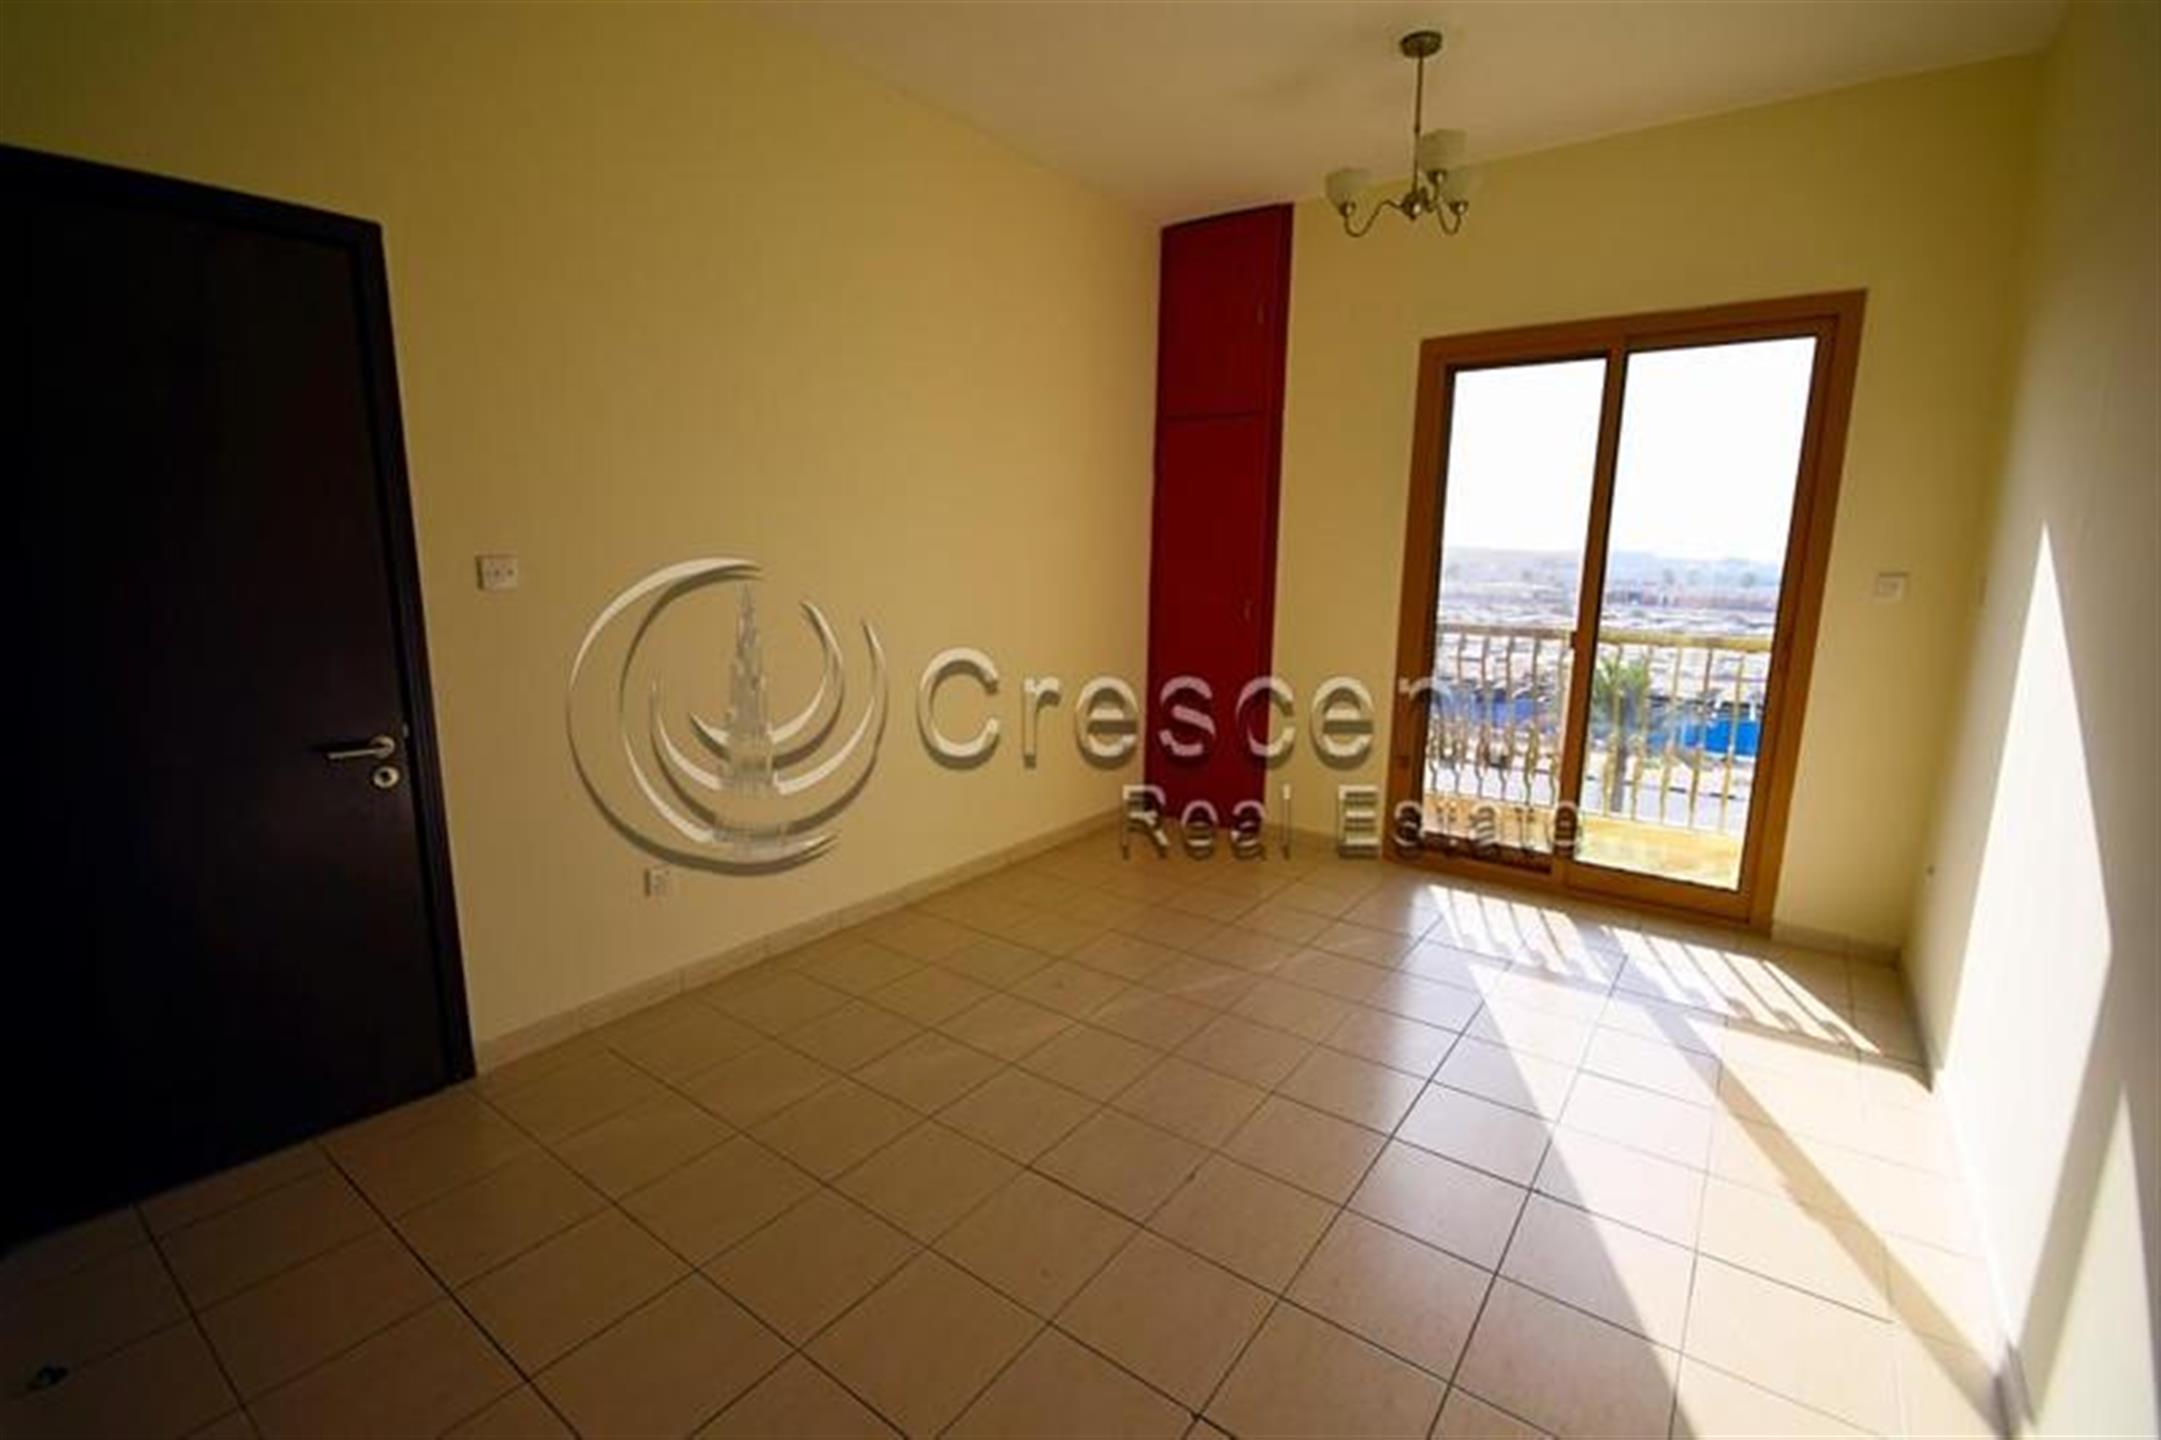 Spain One Bed with Balcony Open View